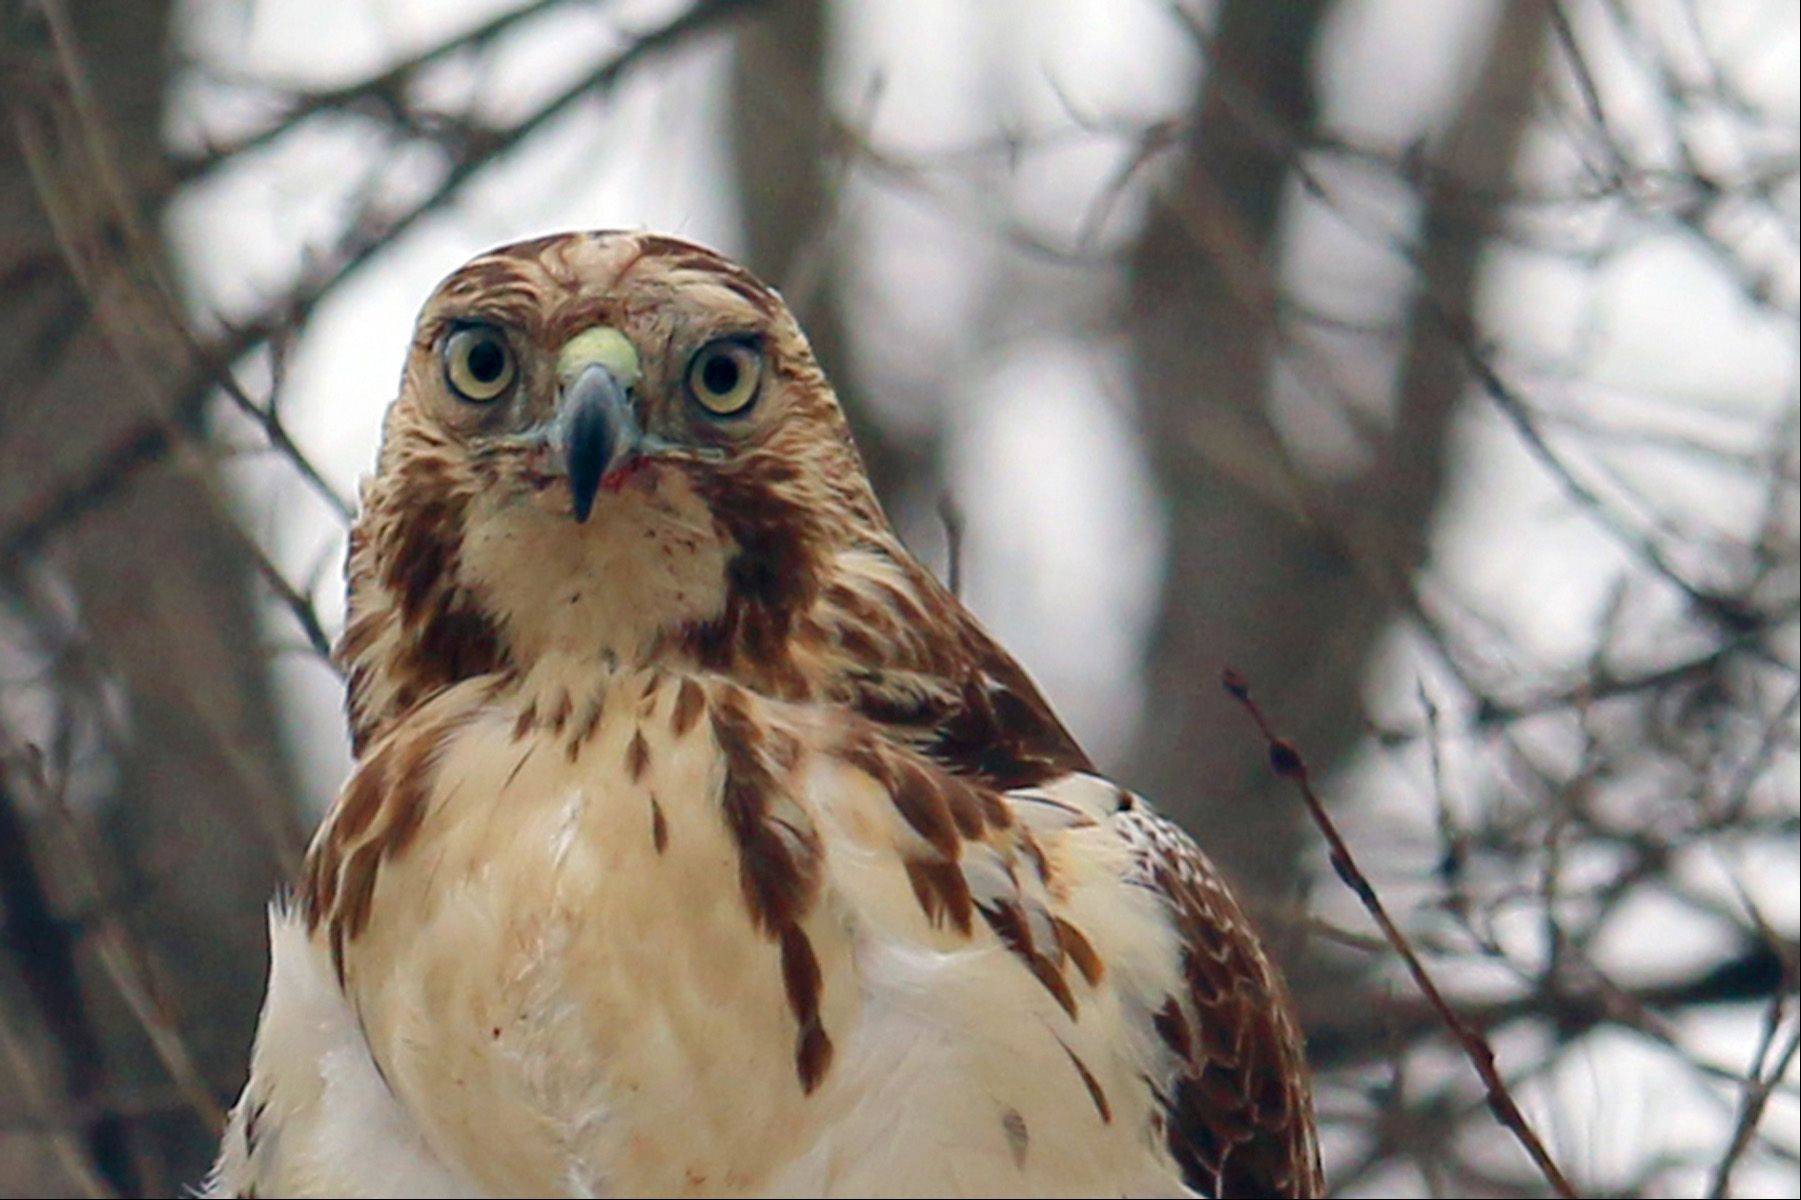 Up close and personal with a hawk.